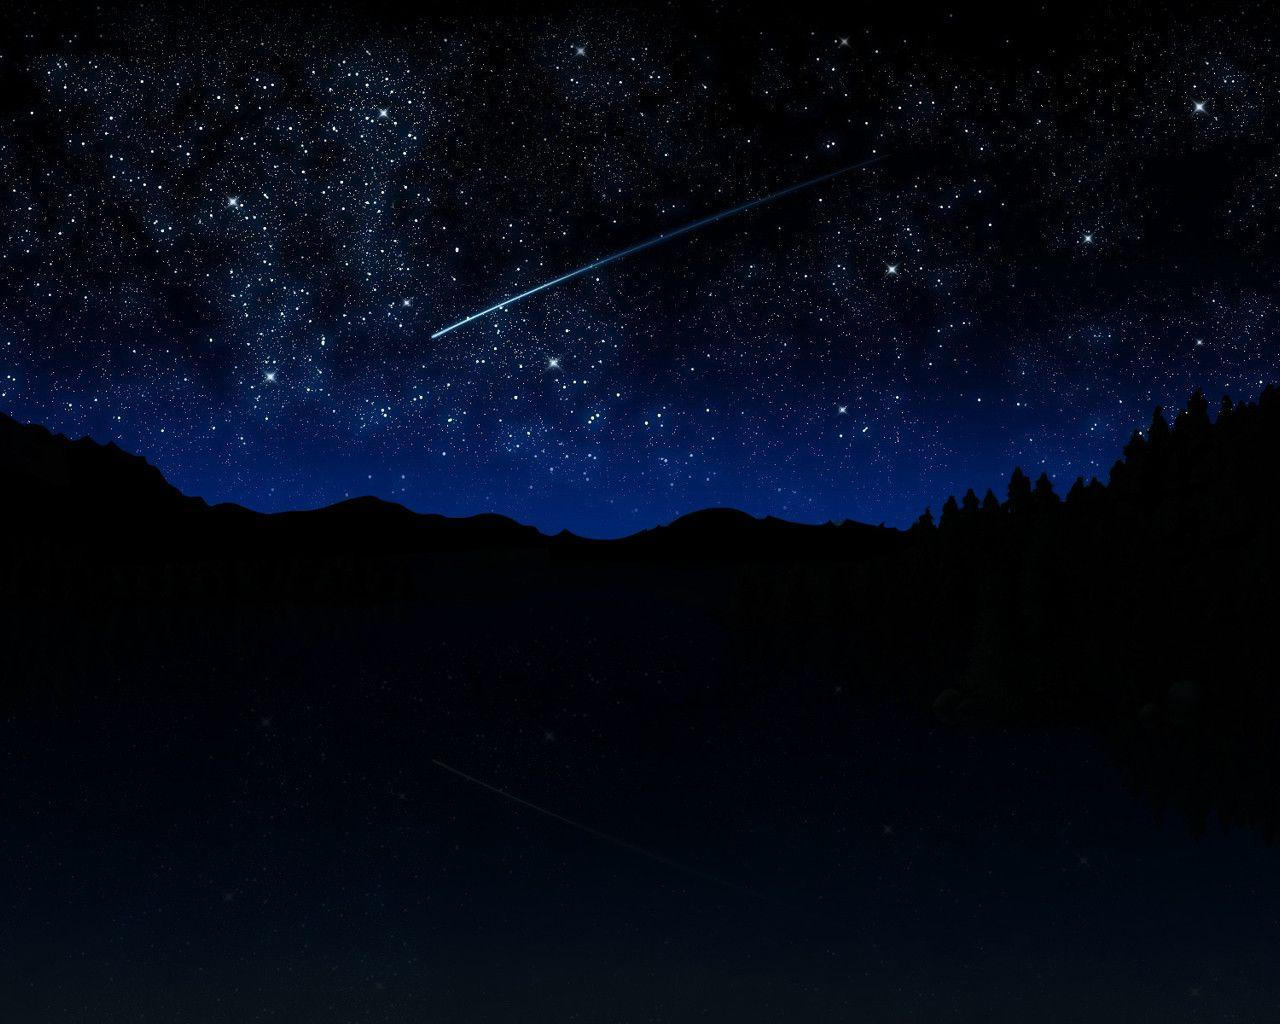 Real Night Sky Wallpaper Hd Images & Pictures - Becuo